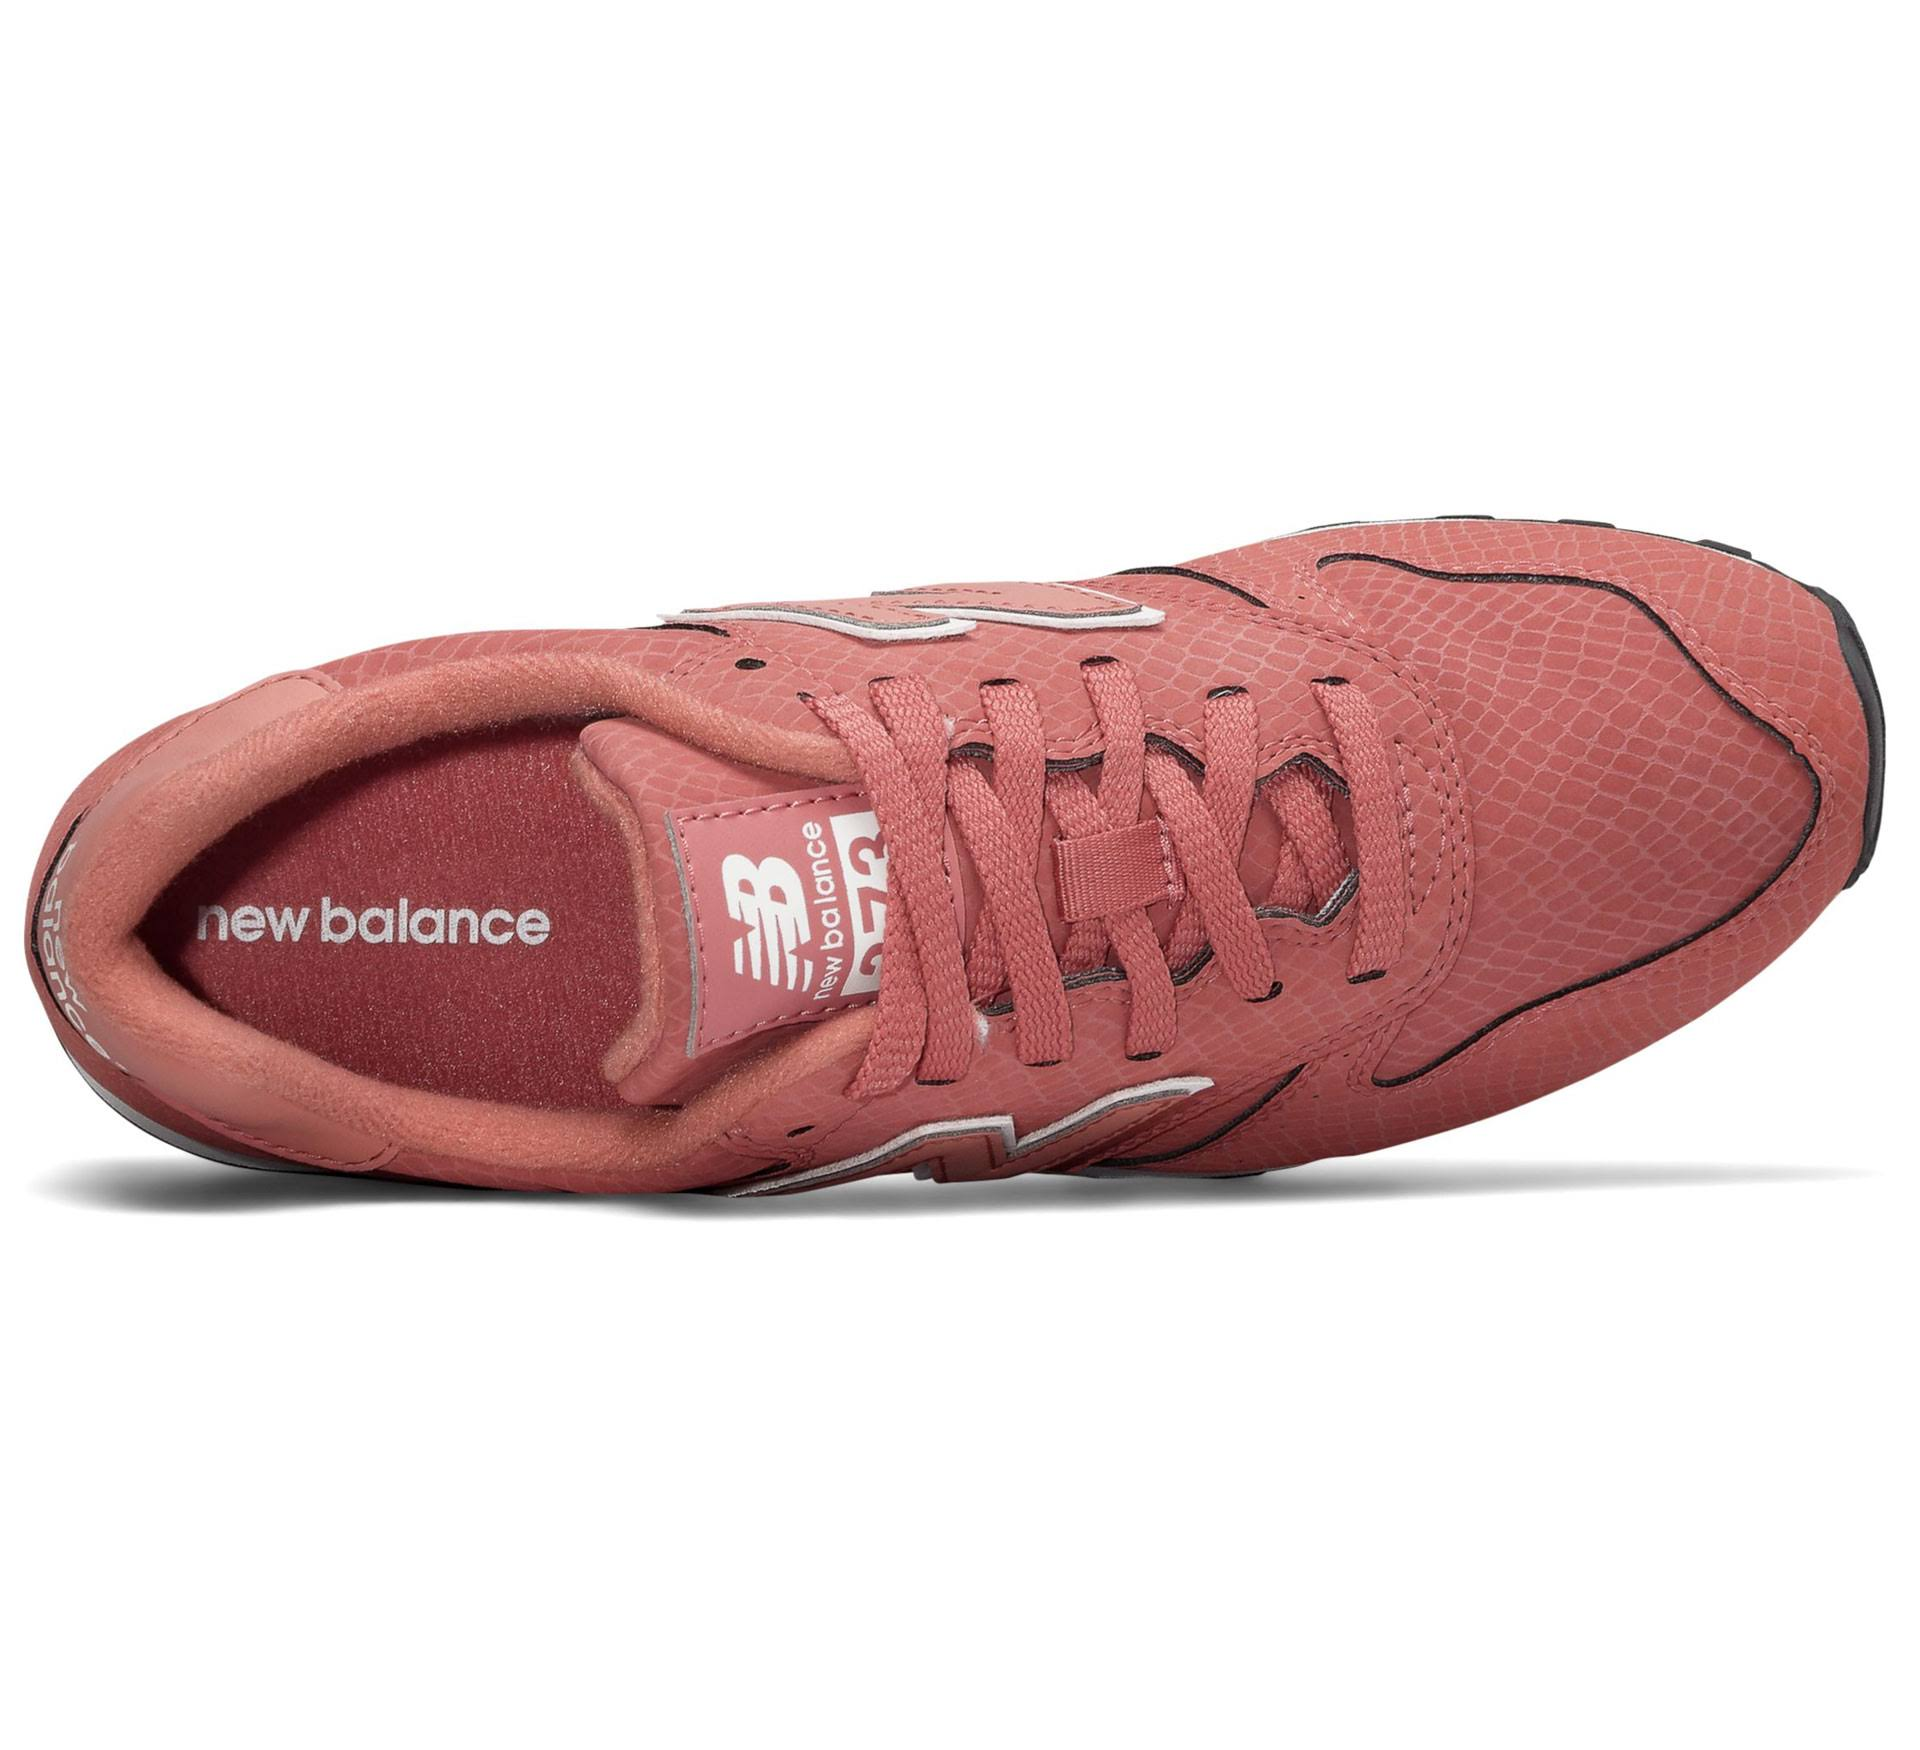 Women's rood New B 7 Dames Wl373 Balance Sneakers 0qwfUqS5